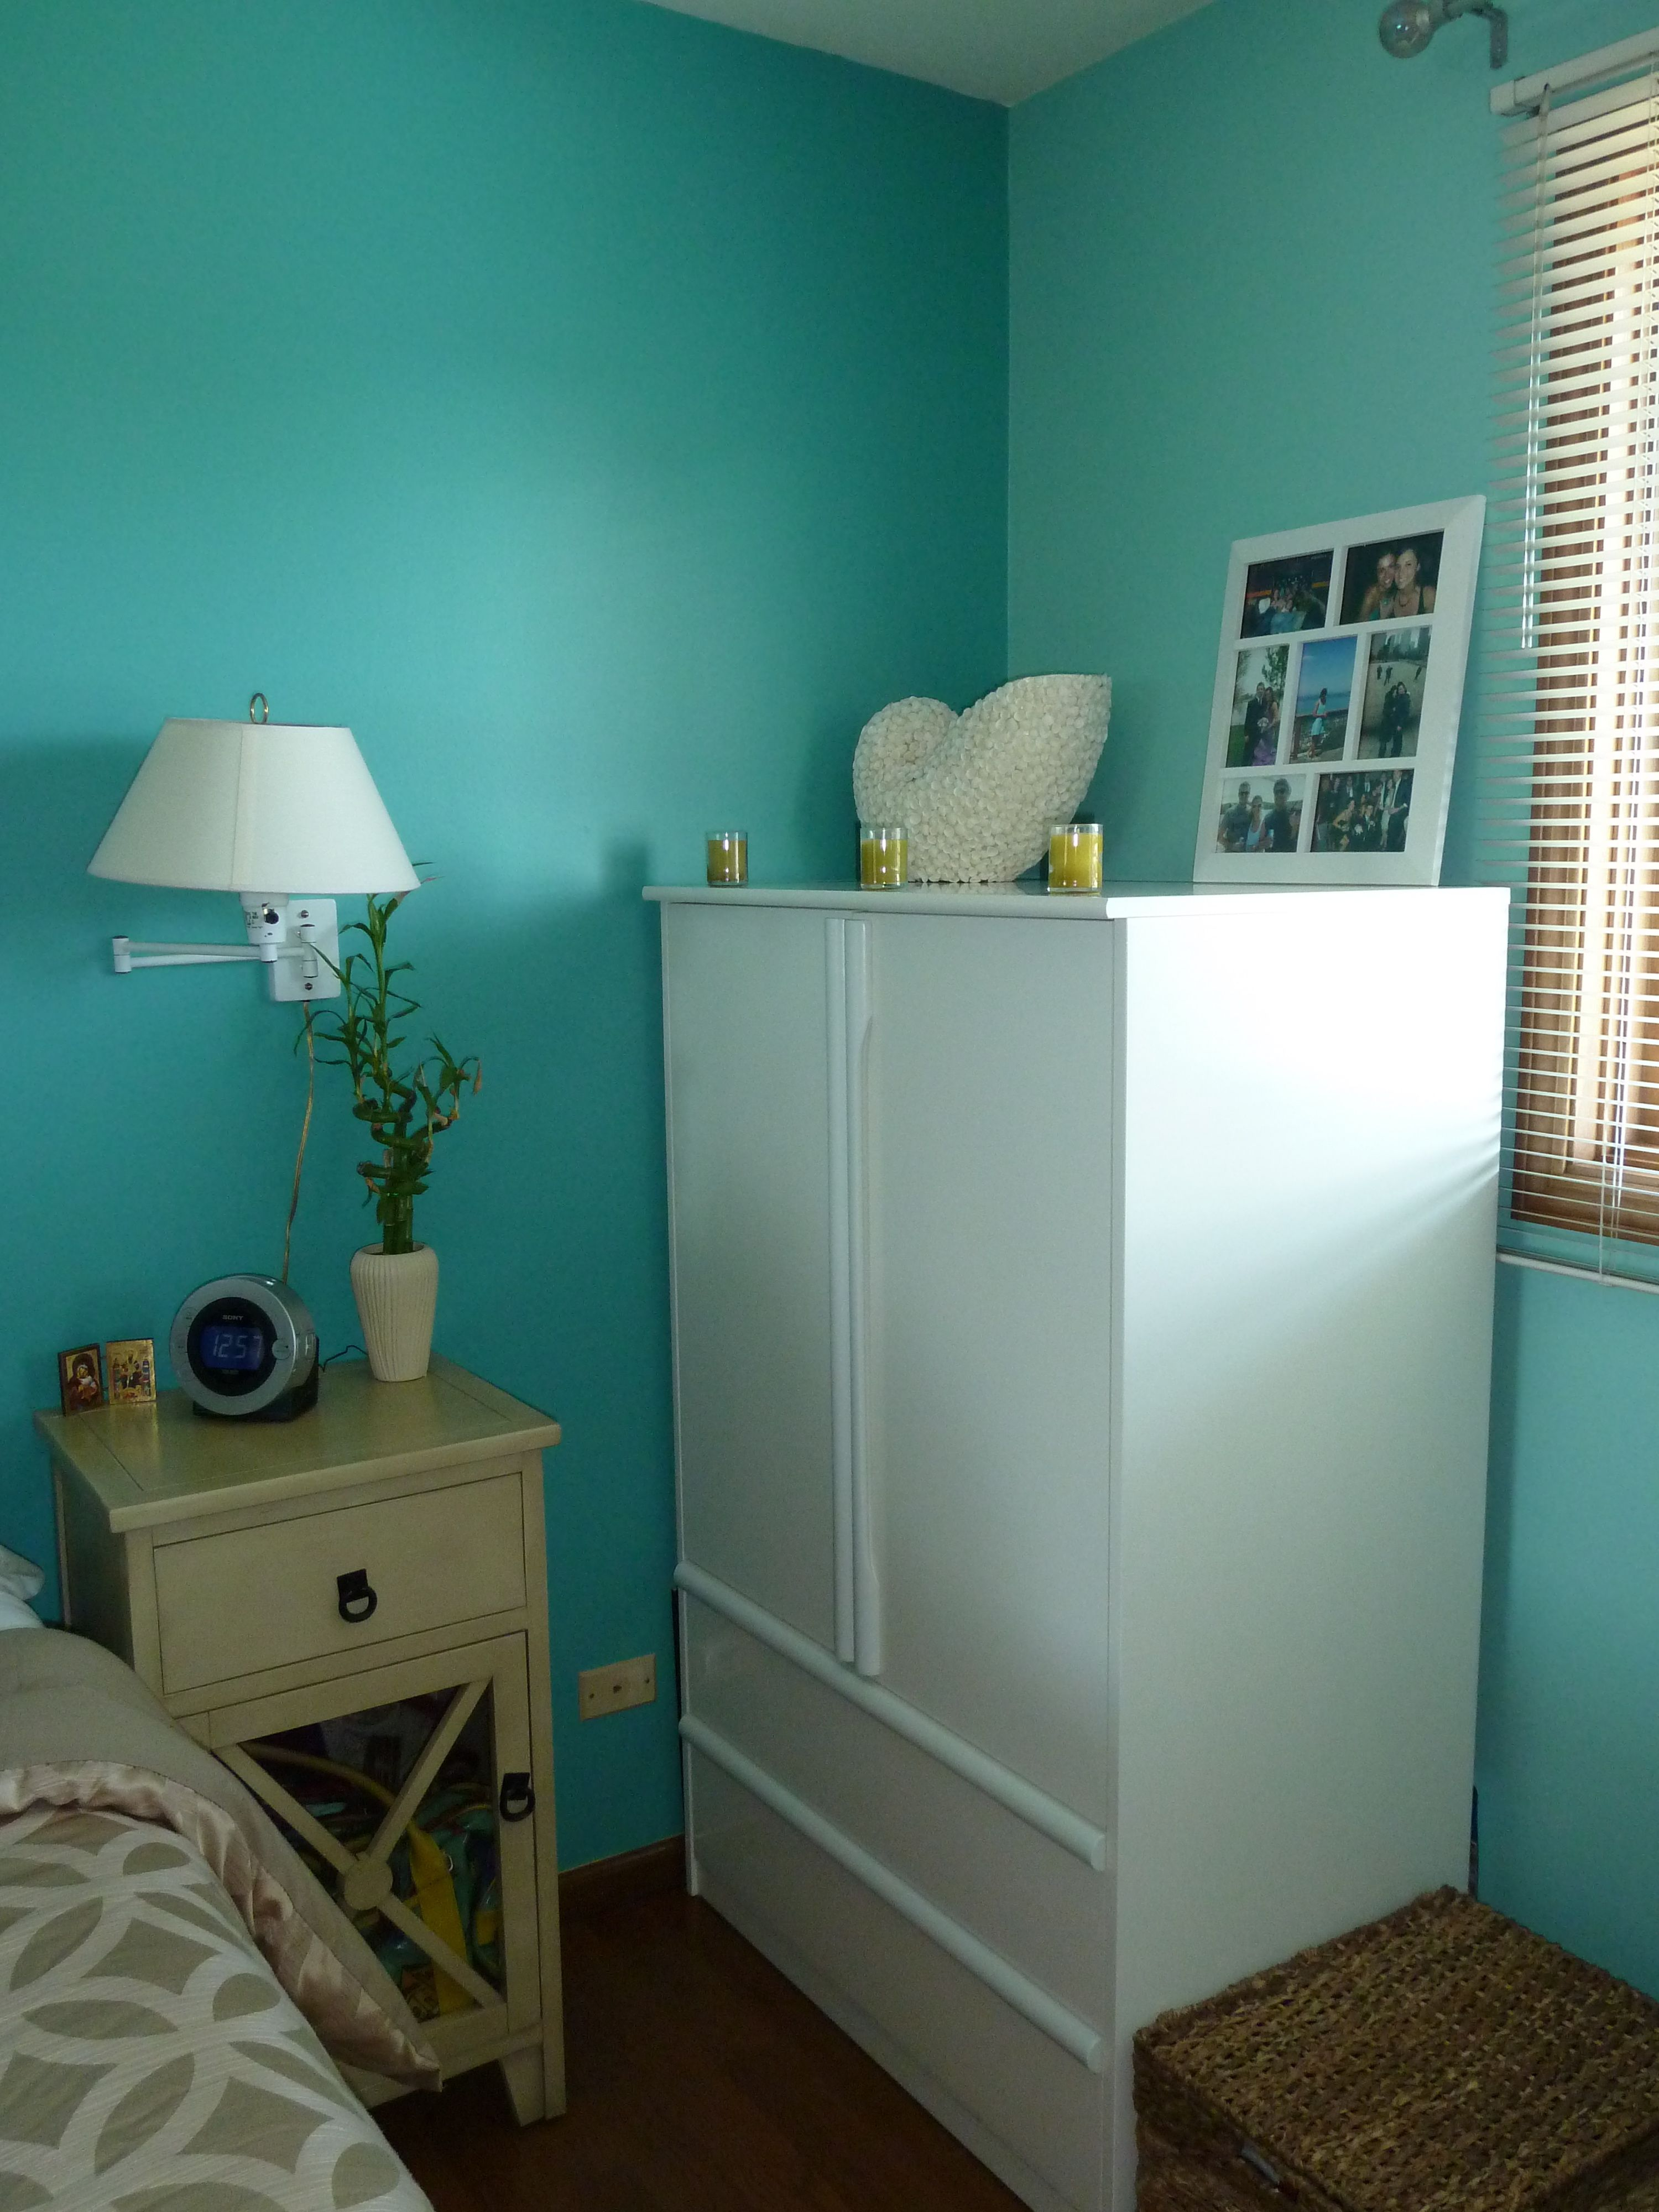 Wall color behr teal zeal jamaica bay for Teal paint colors for bedrooms